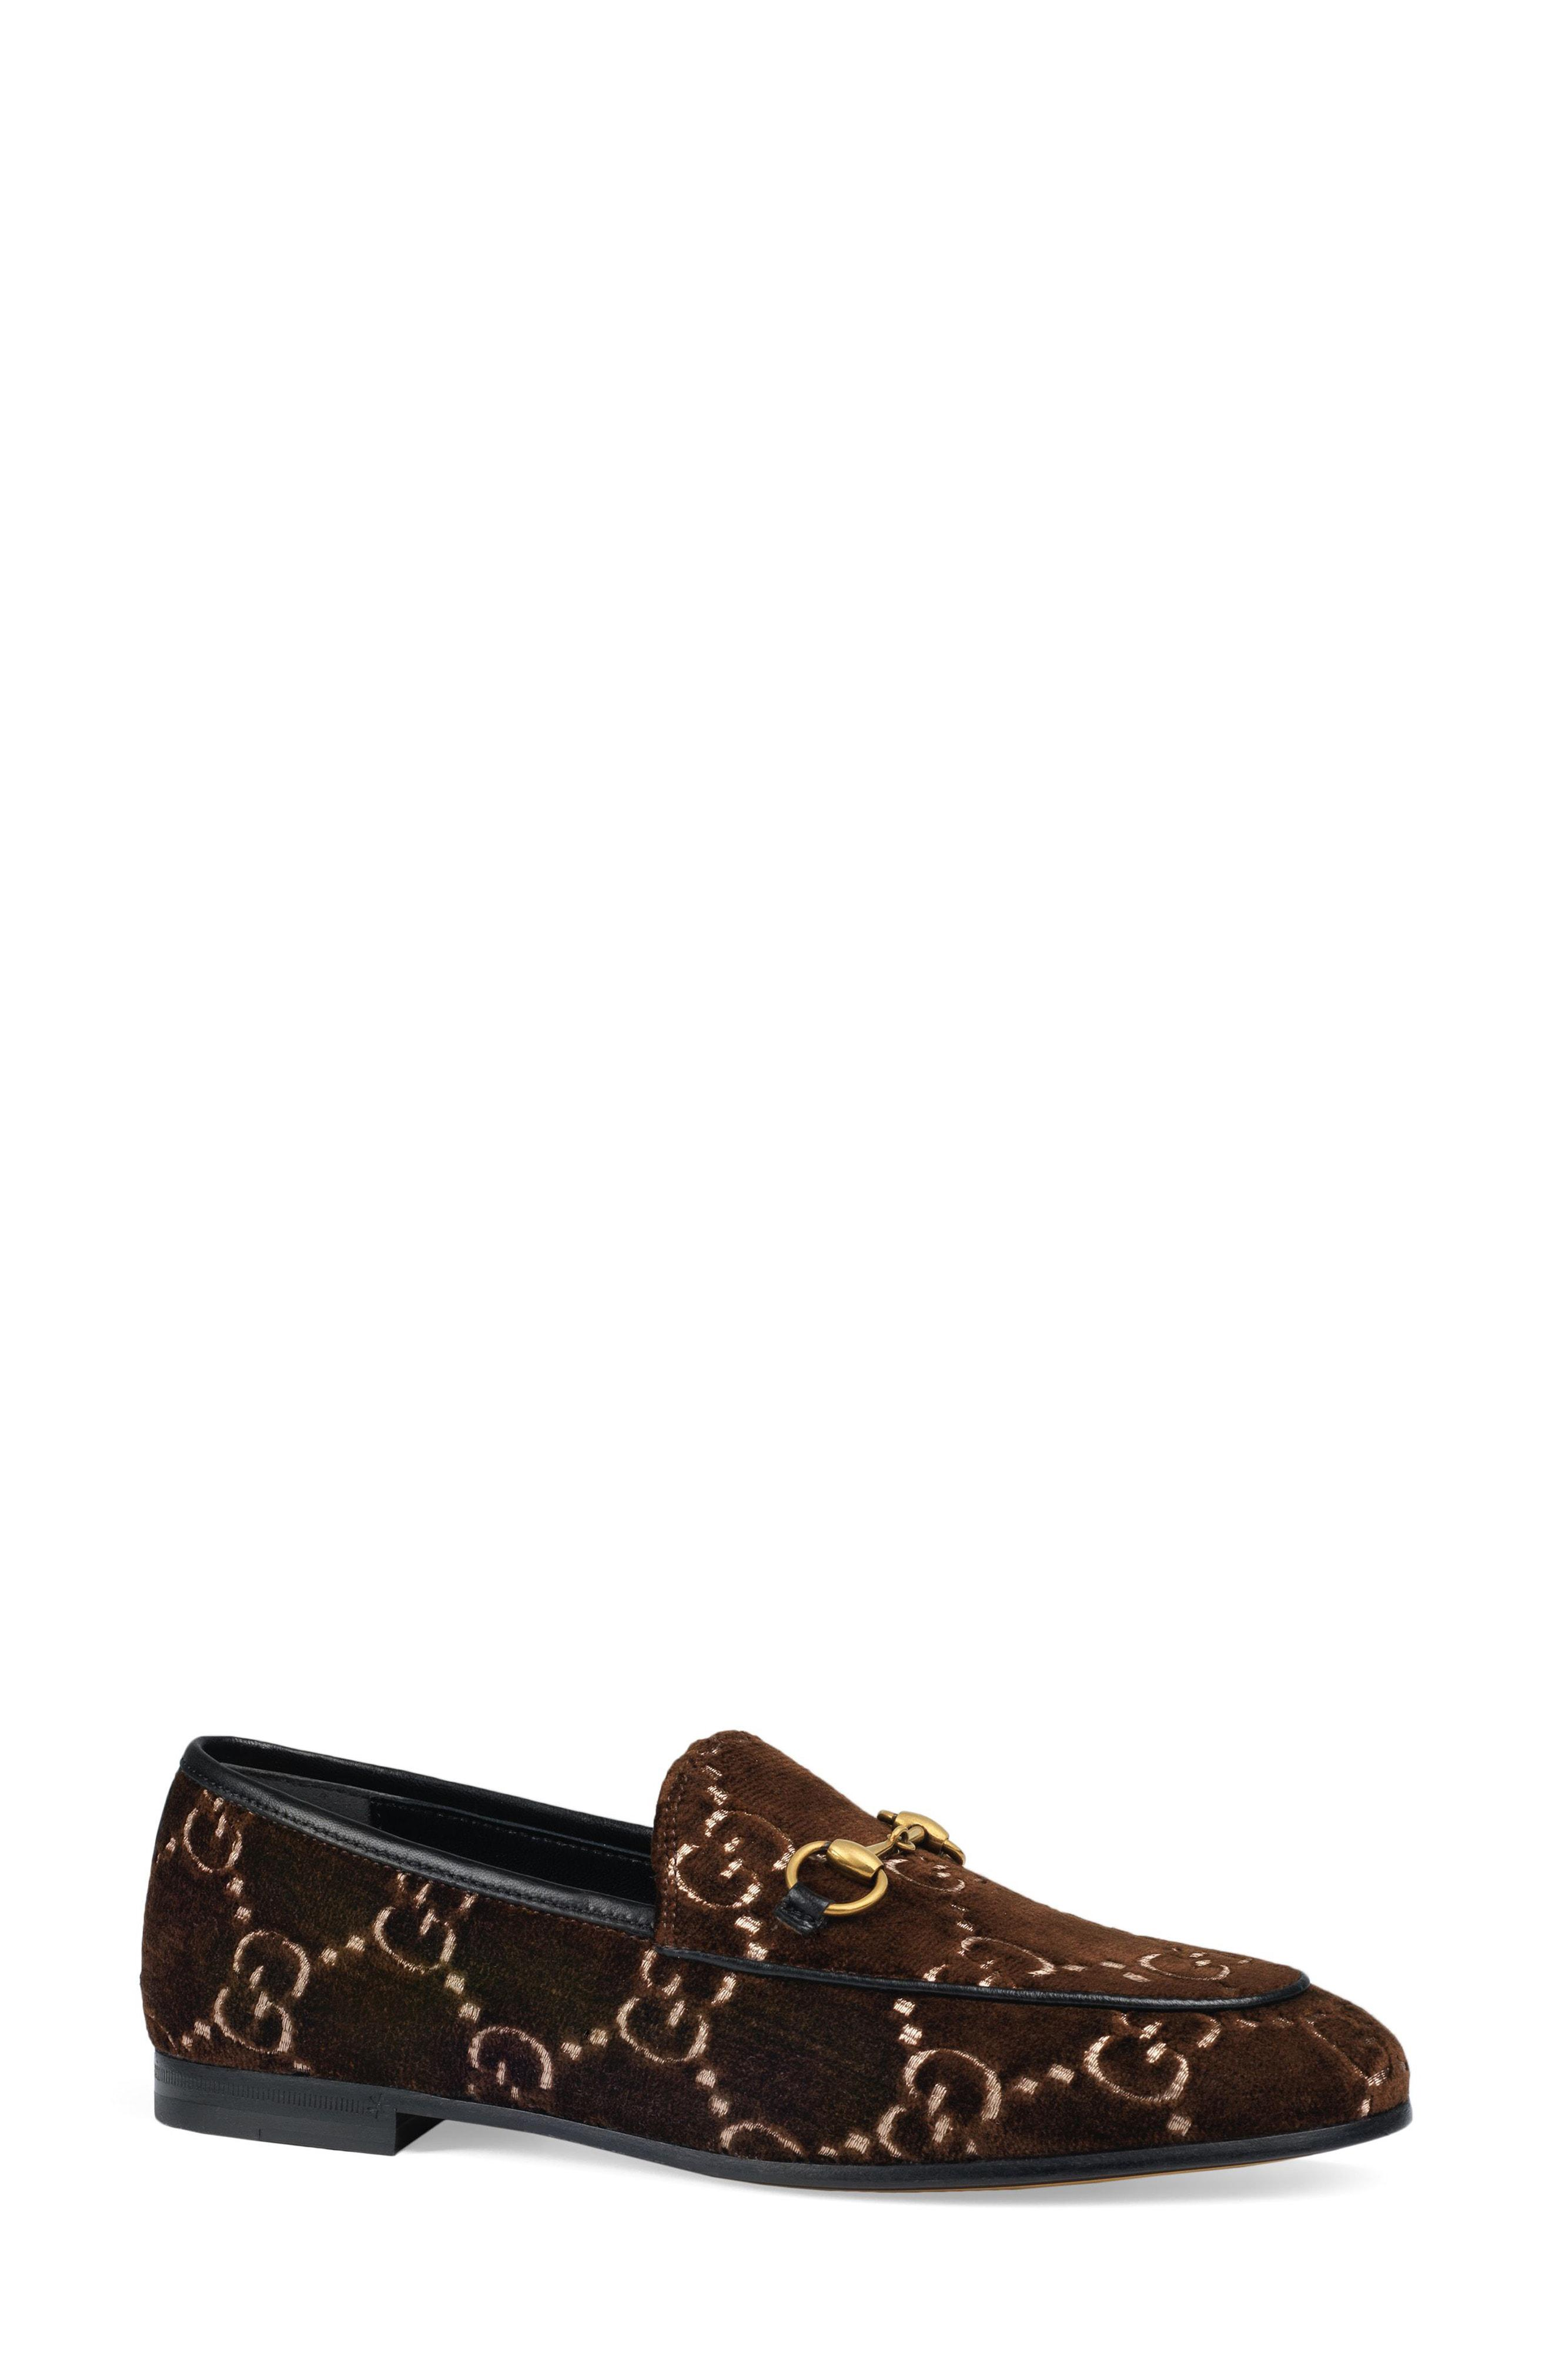 7c1710ad899 Lyst - Gucci Jordaan Loafer in Brown - Save 16%